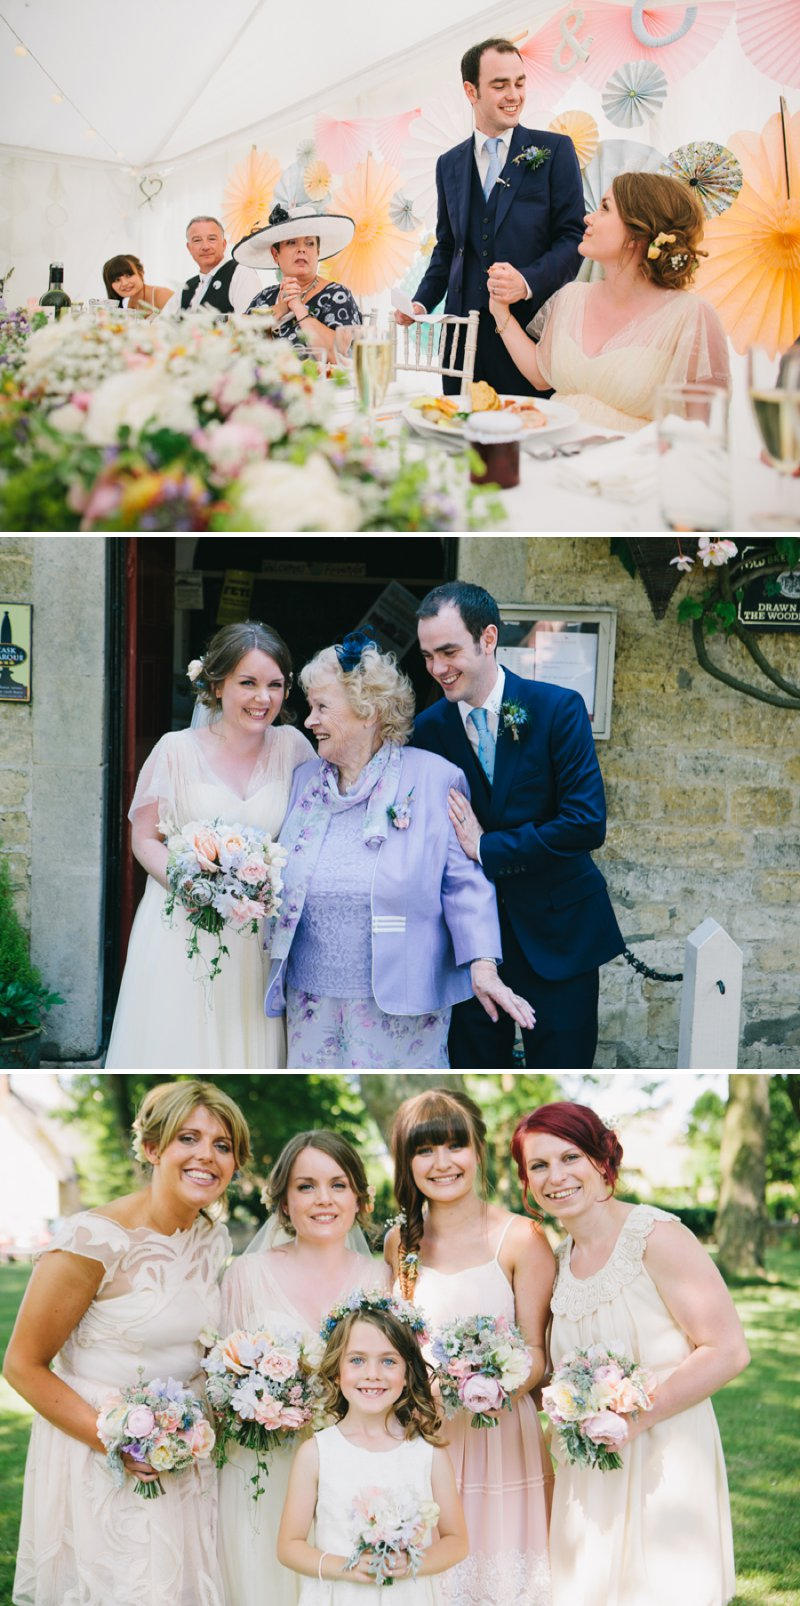 Marquee Wedding With A Pastel Colour Scheme At The Fox And Hounds Inn Rutland With Bride In Bespoke Kula Tsurdiu Gown And Groom In Reiss Suit 13 The Perfect Fit...Tabitha & Chris Part Two.